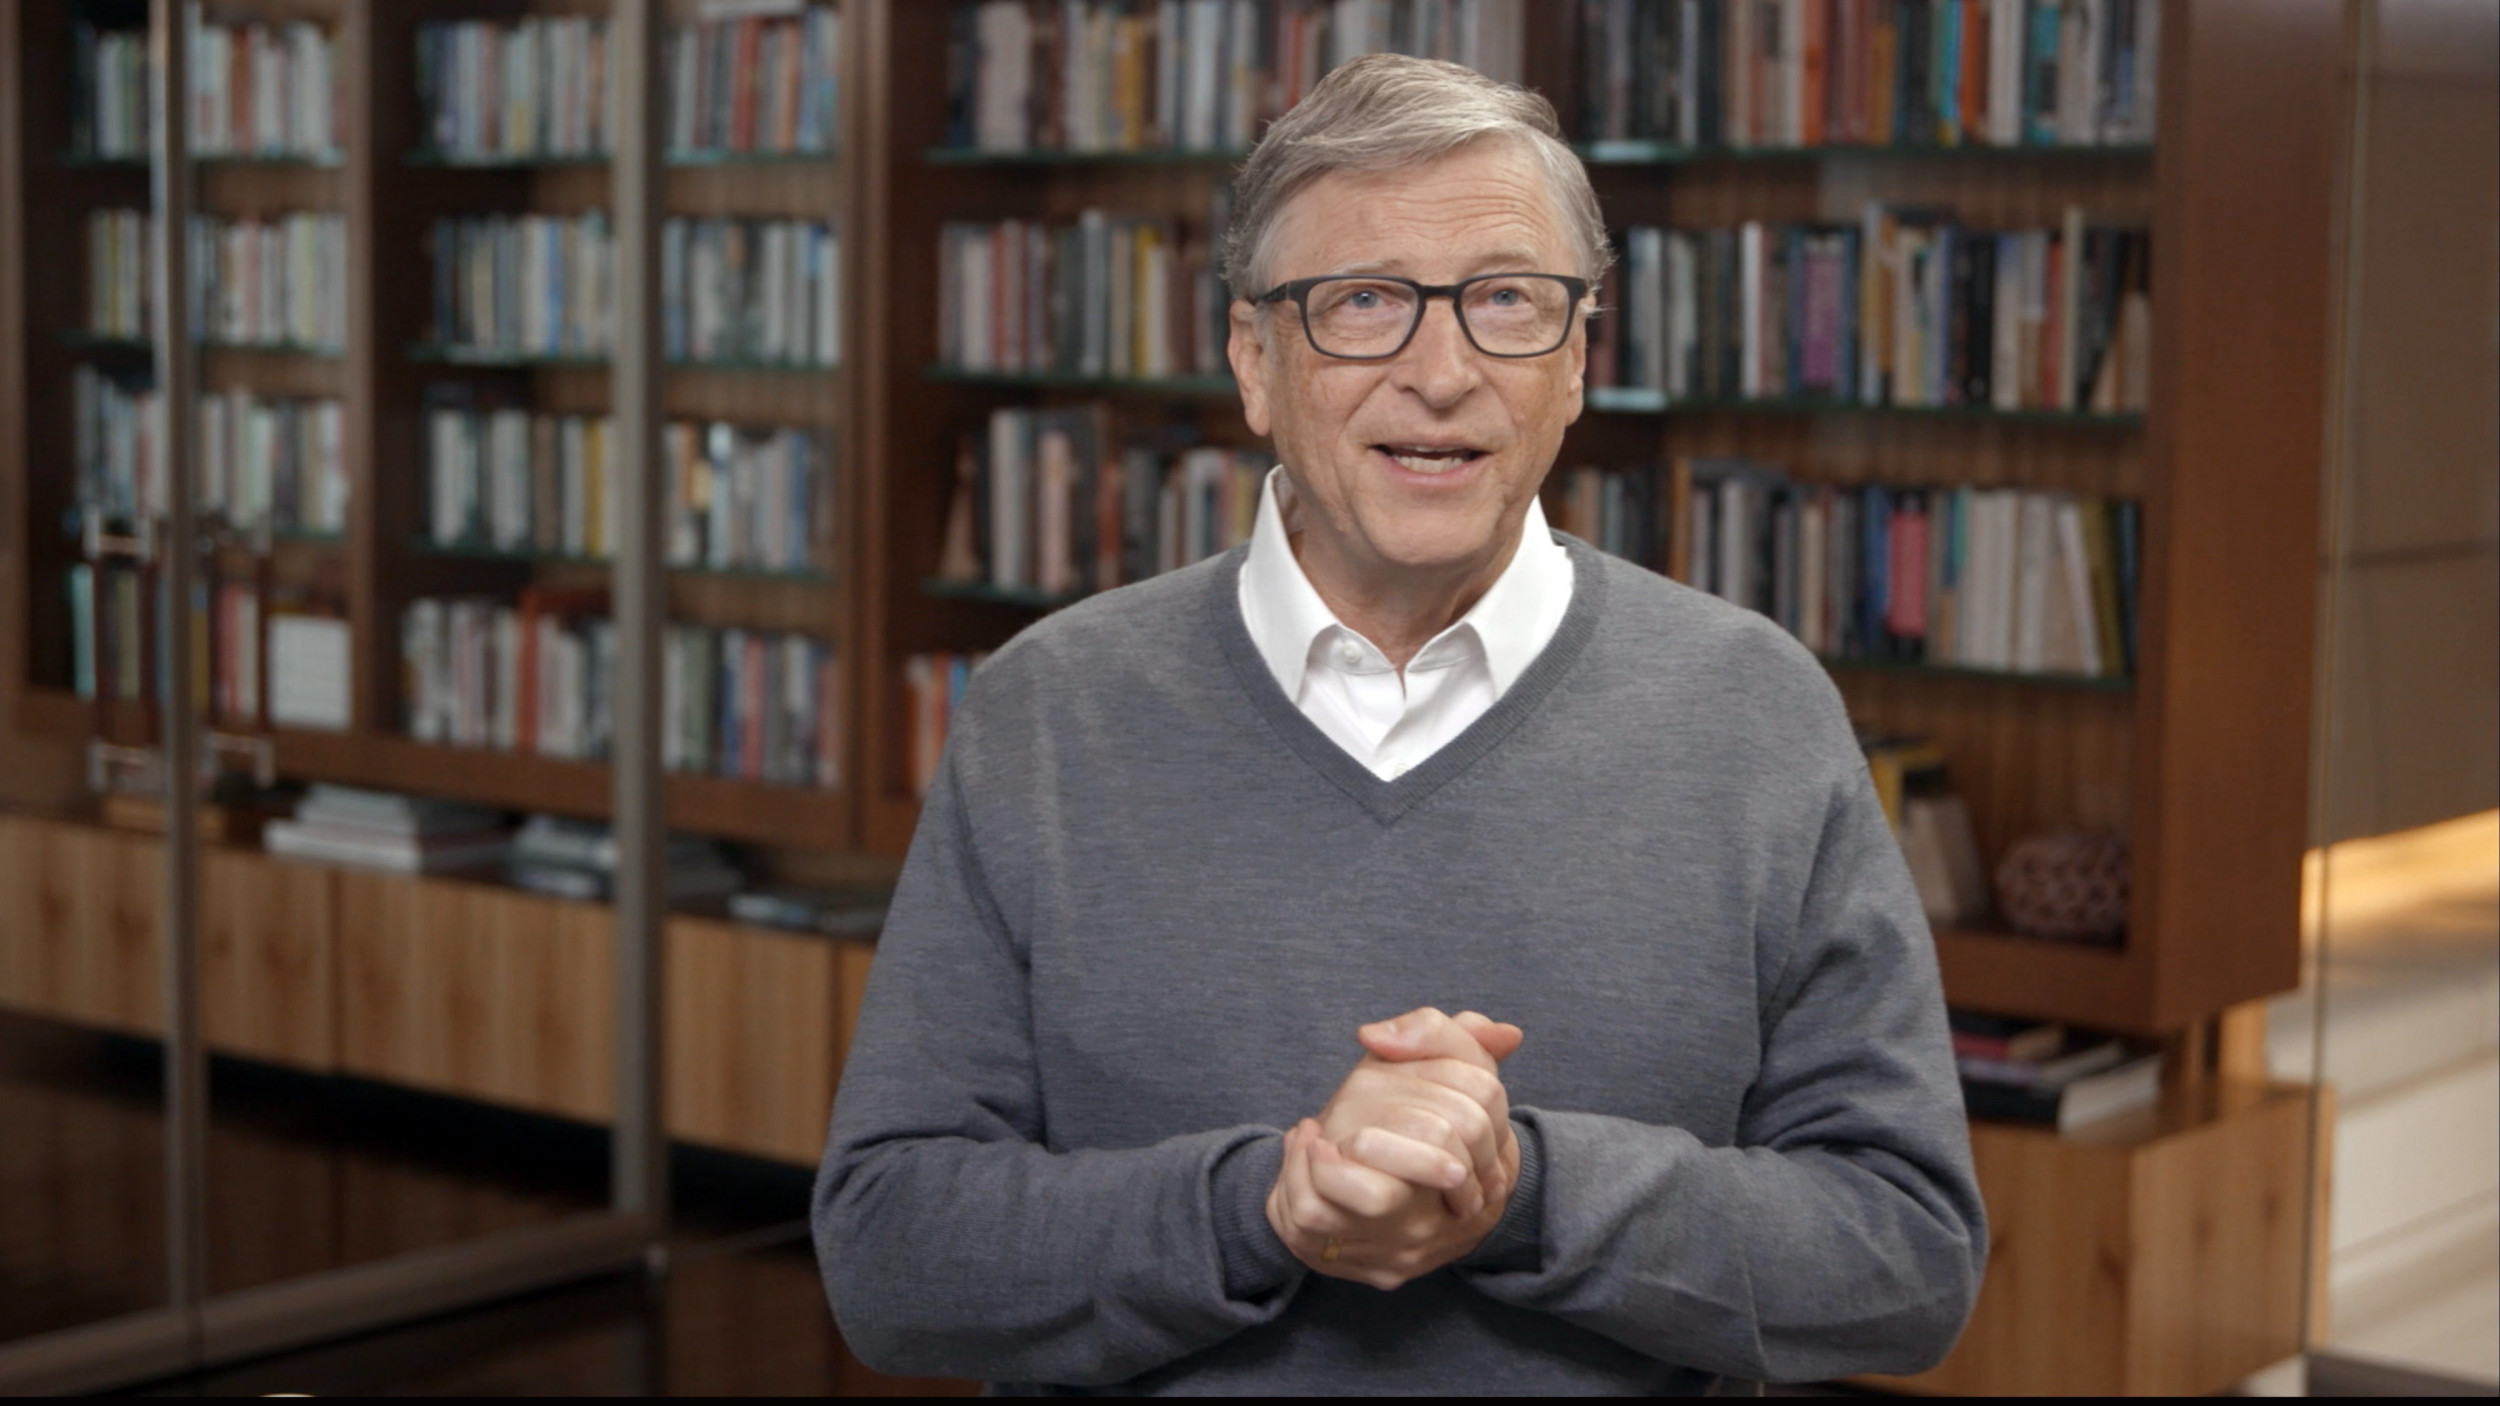 8 Takeaways From Bill Gates' Clubhouse Interview As He Becomes Latest Billionaire on App